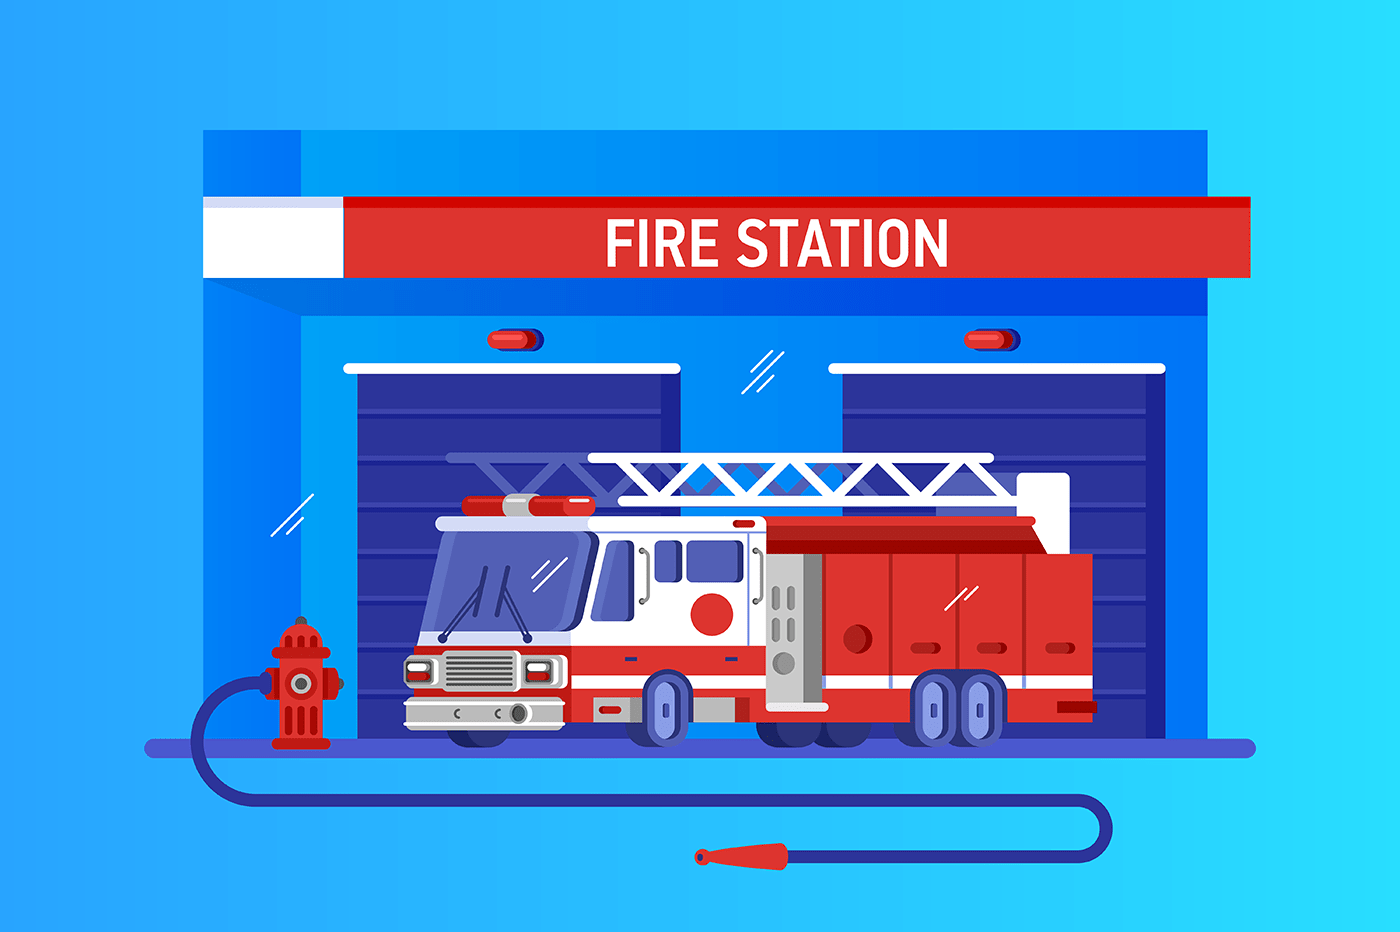 Fire station with truck. Rapid response service